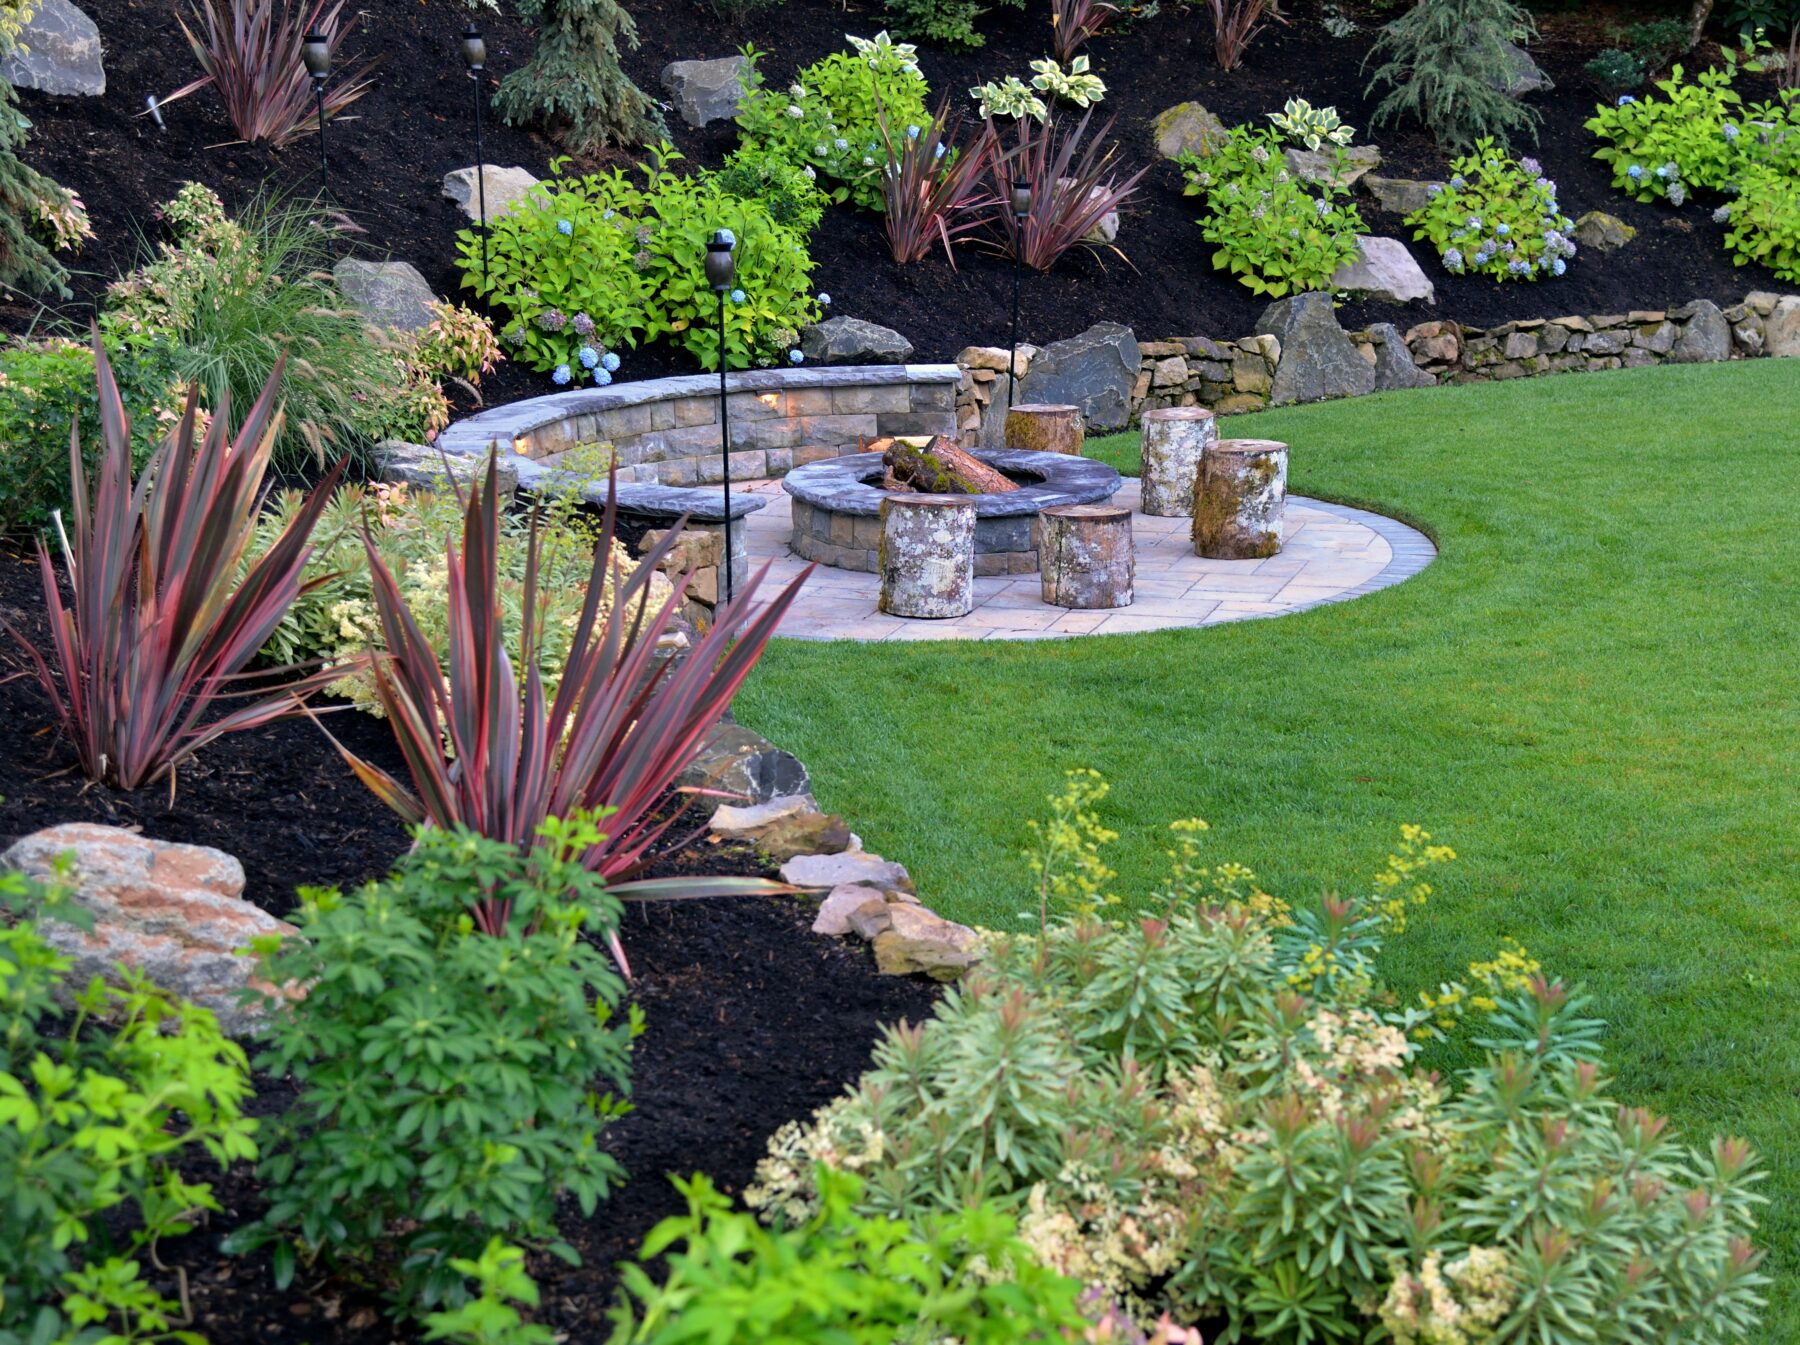 An example of Scappoose landscape design and landscape construction work